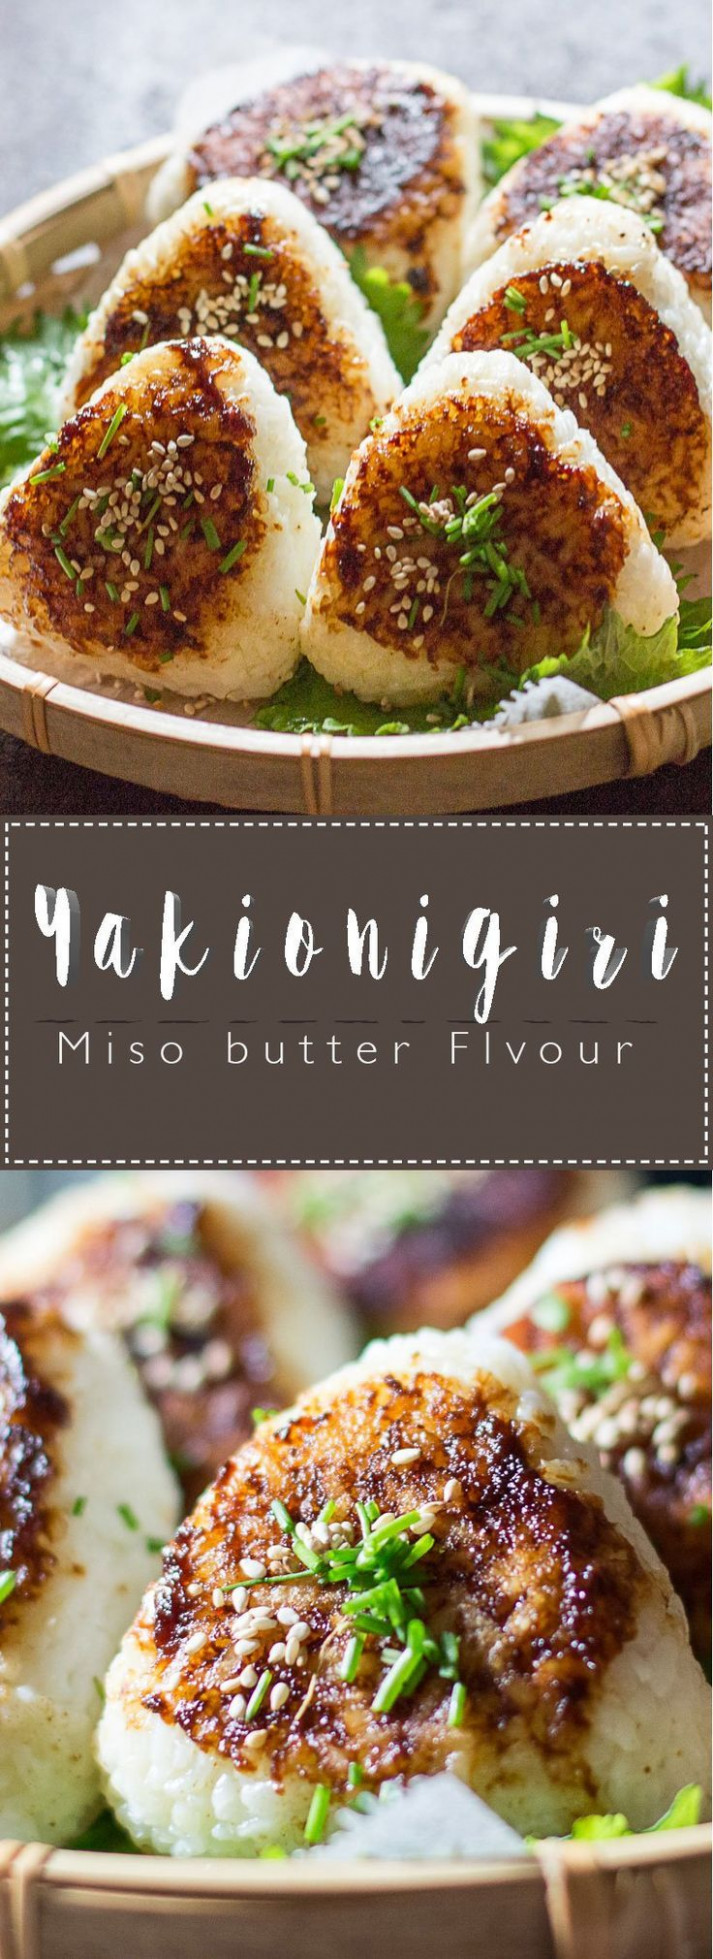 Yakionigiri Miso Butter Flavour Collage | Japanese Food ..